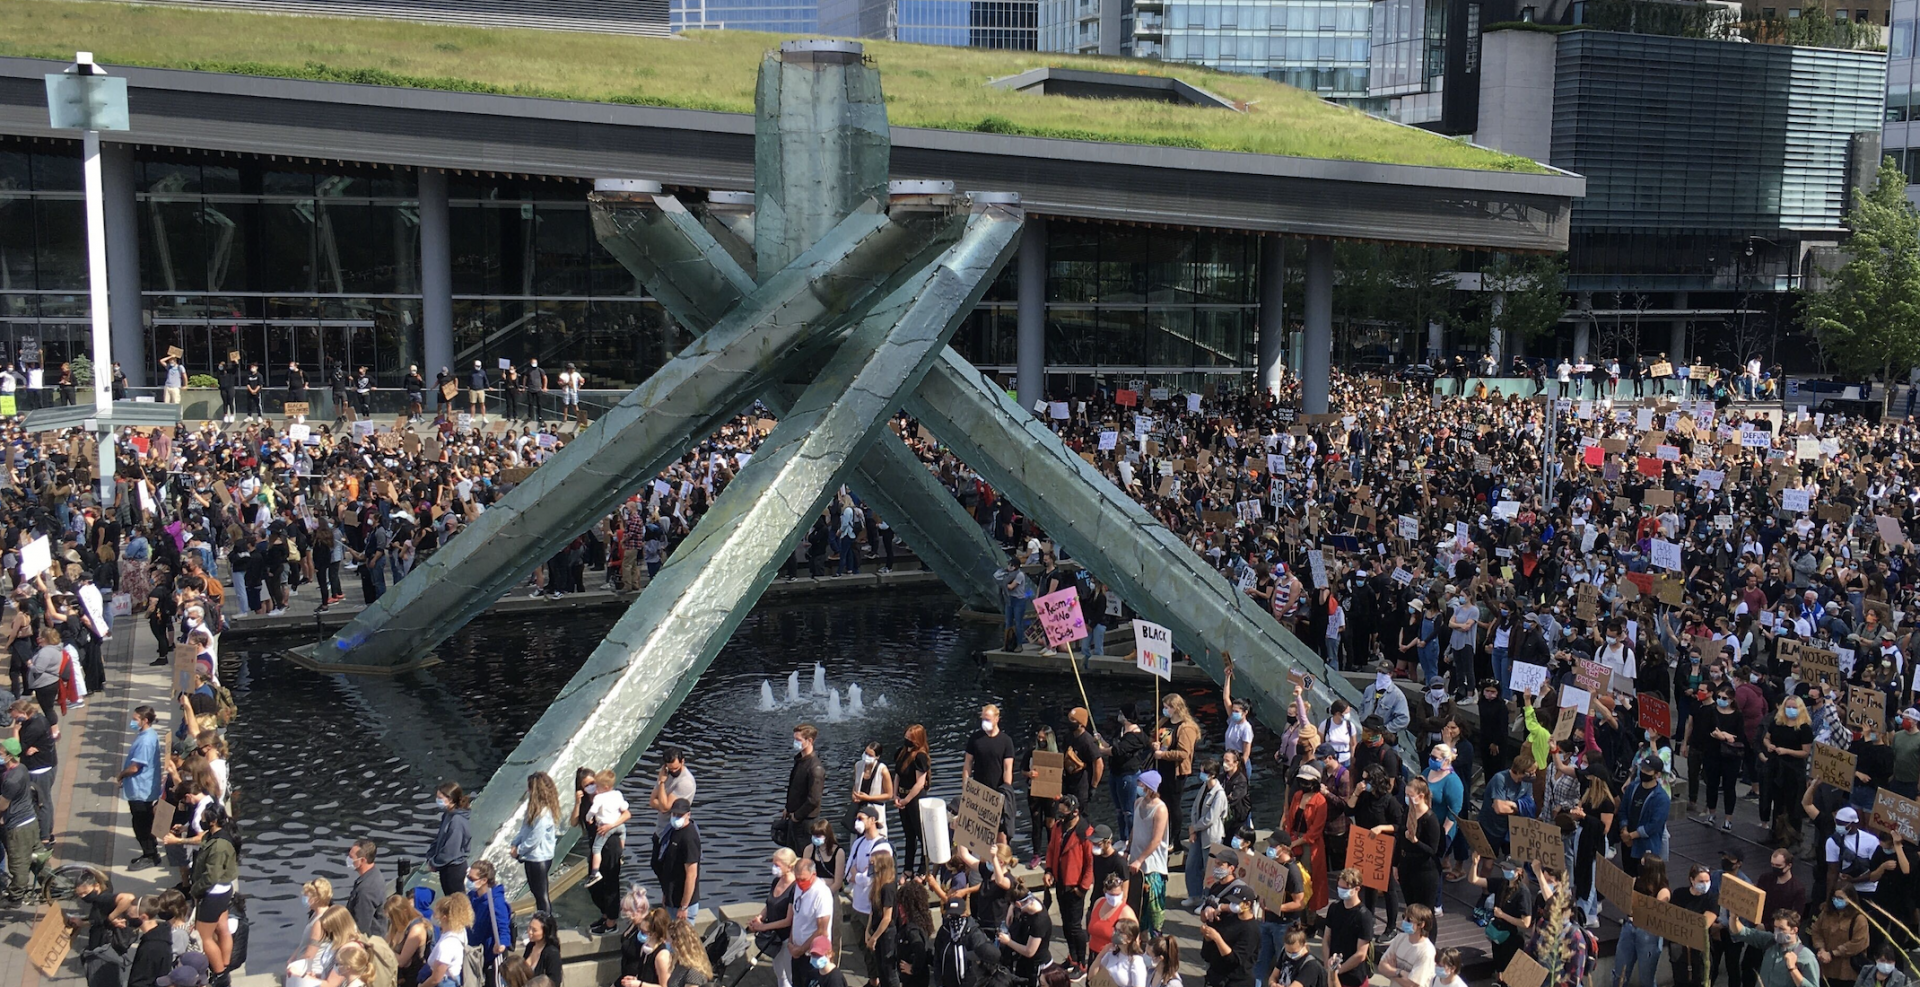 Protesters in Vancouver call for end to police brutality, anti-Black racism